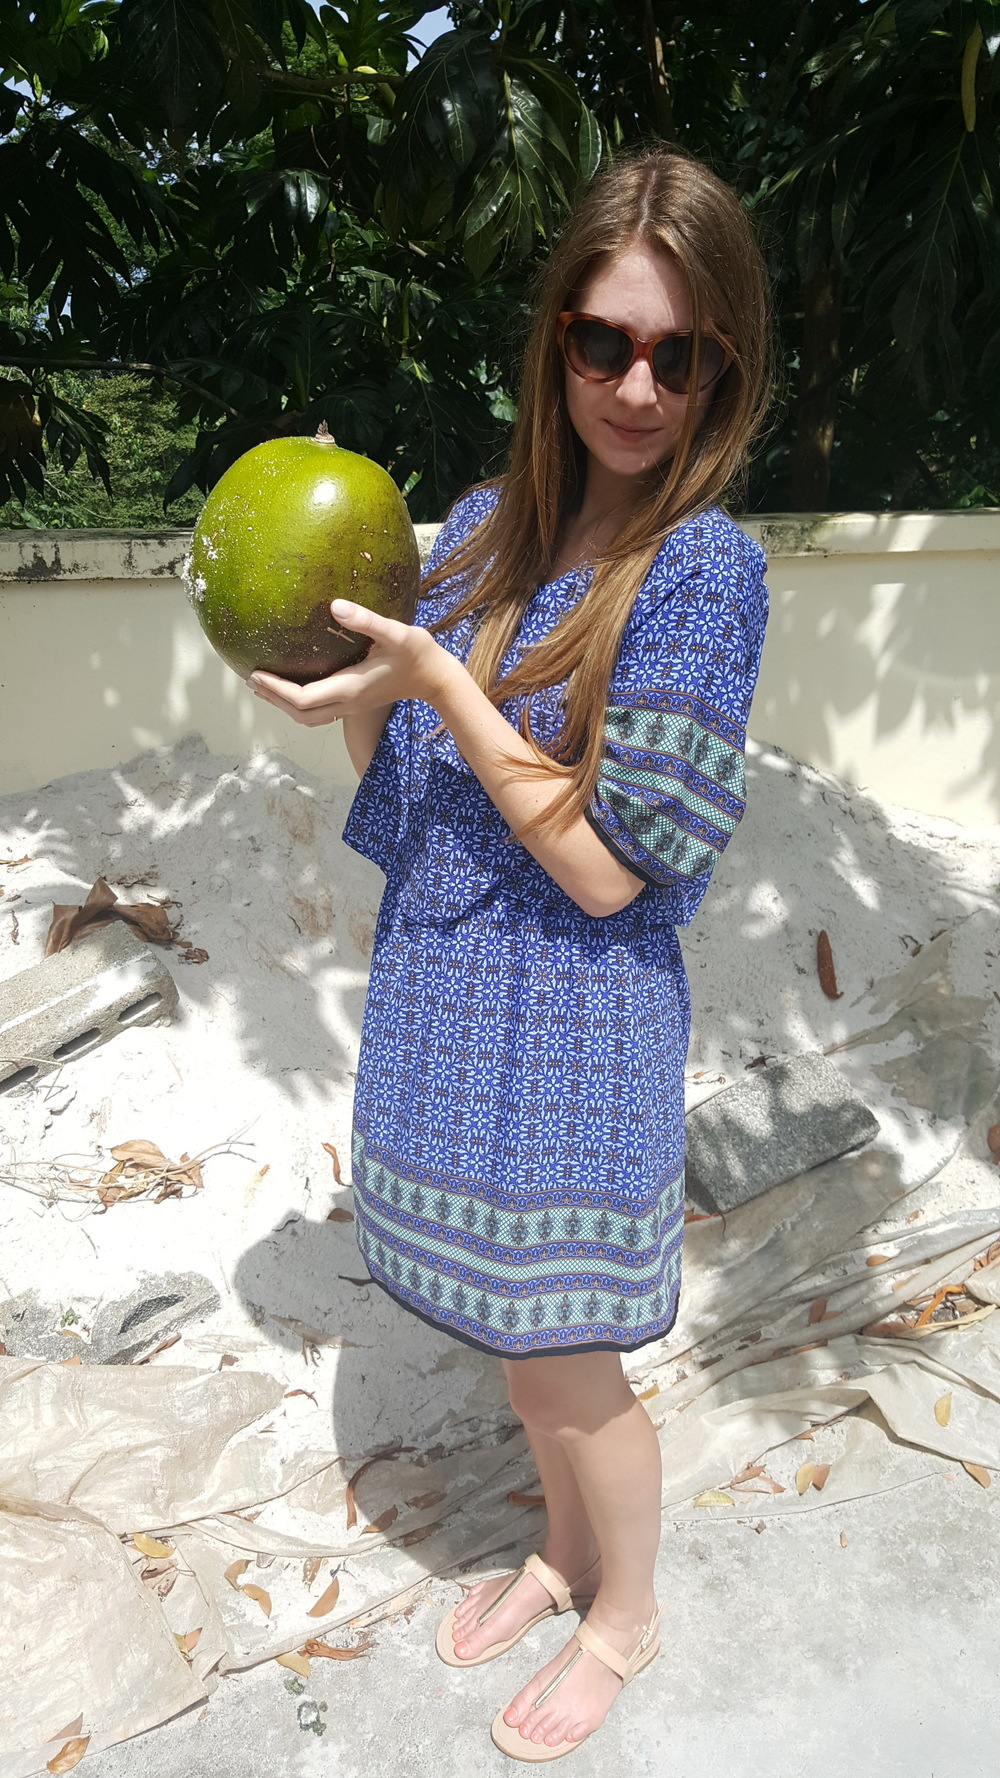 A calabash! They use every part of this fruit.